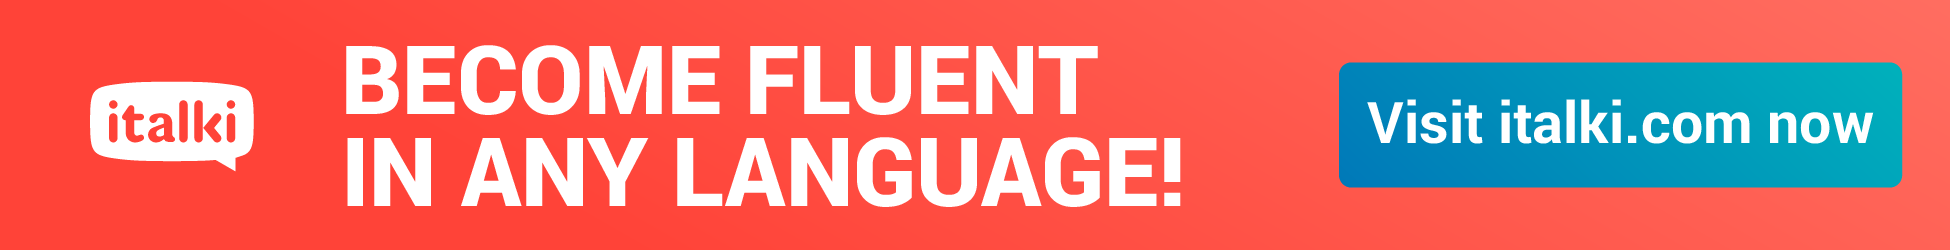 Become fluent in any language!